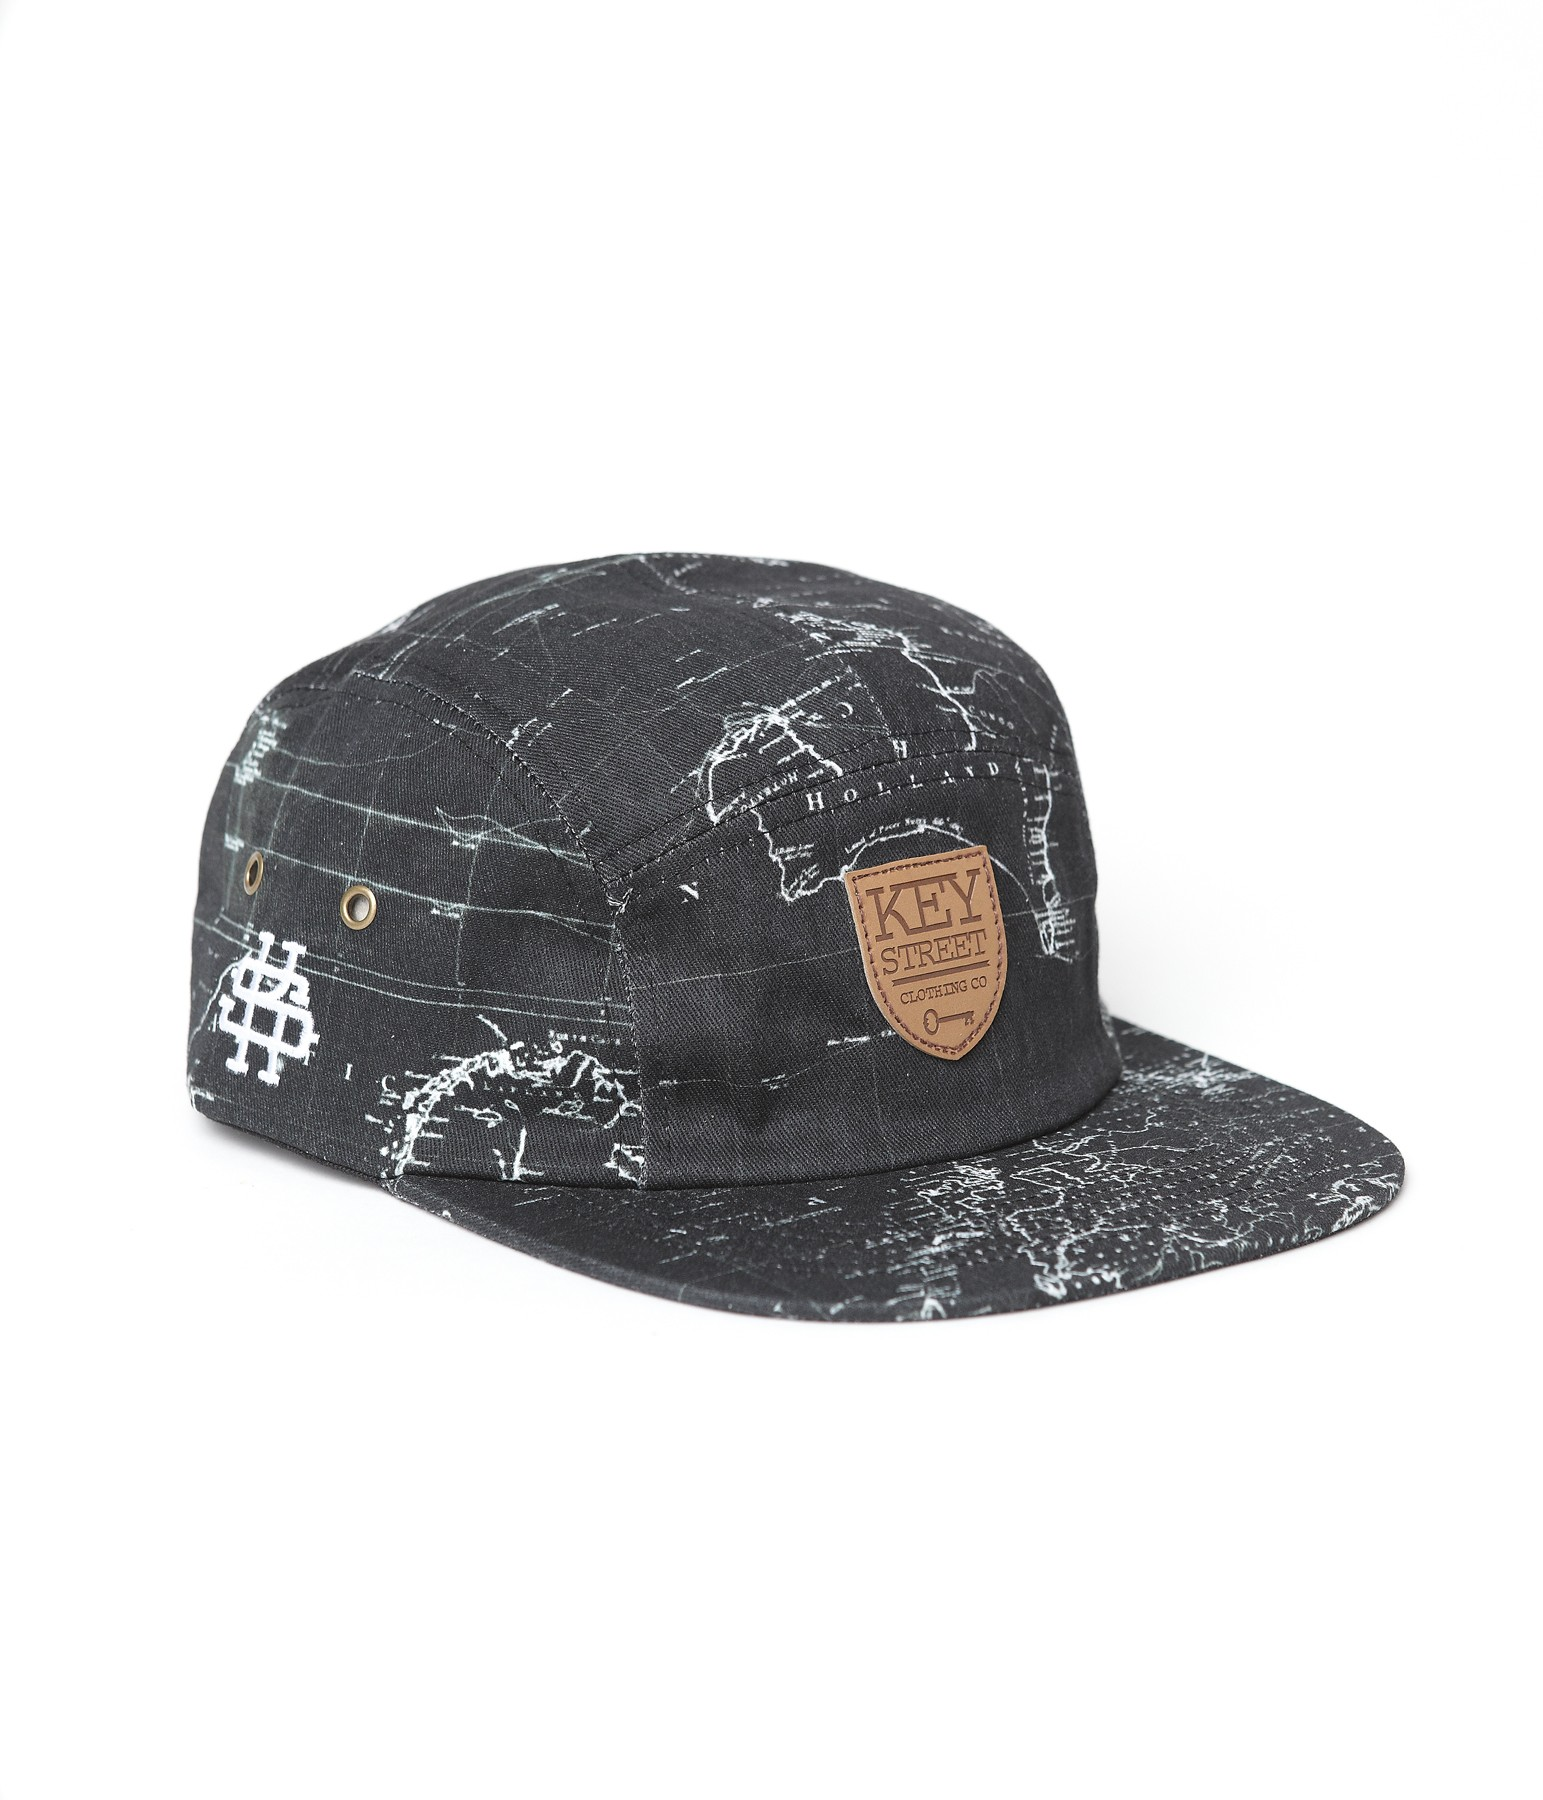 Leather Patch Camp Hat